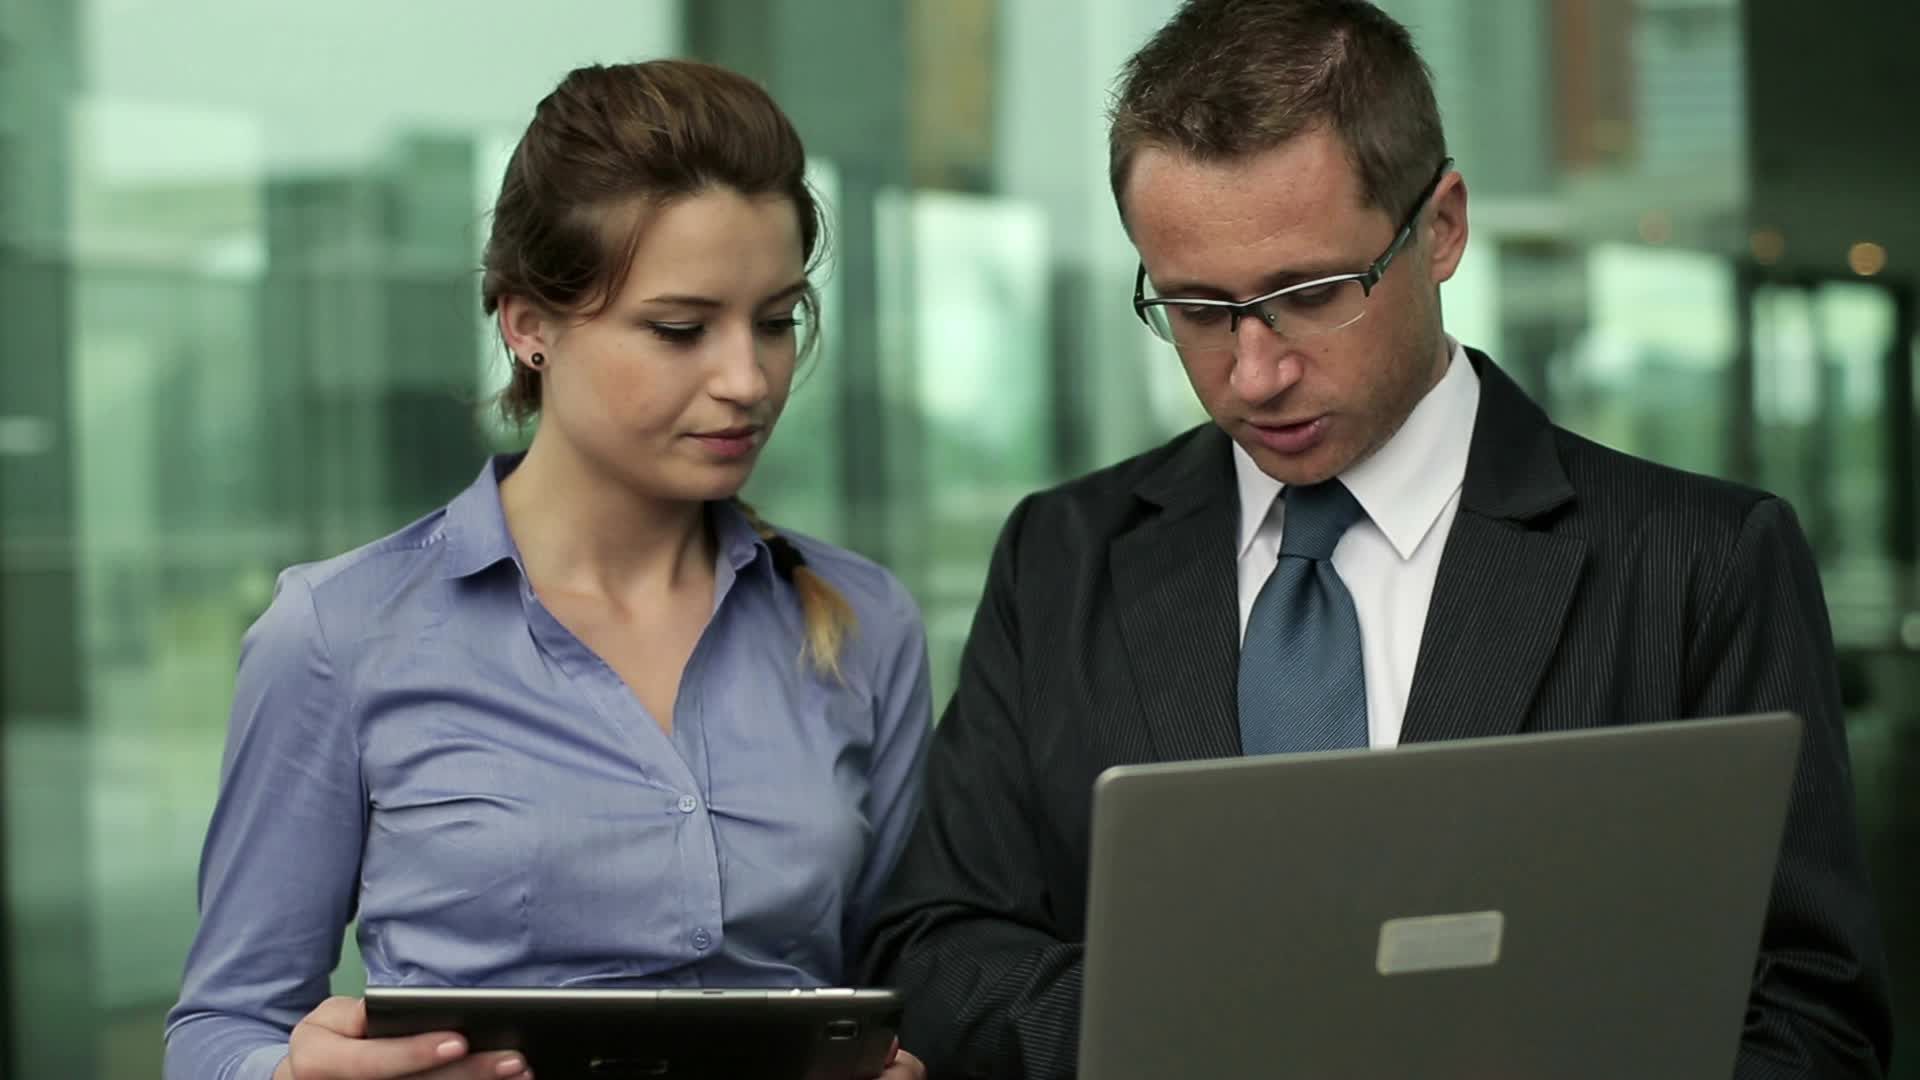 young-business-couple-tablet-and-footage-012184130_prevstill